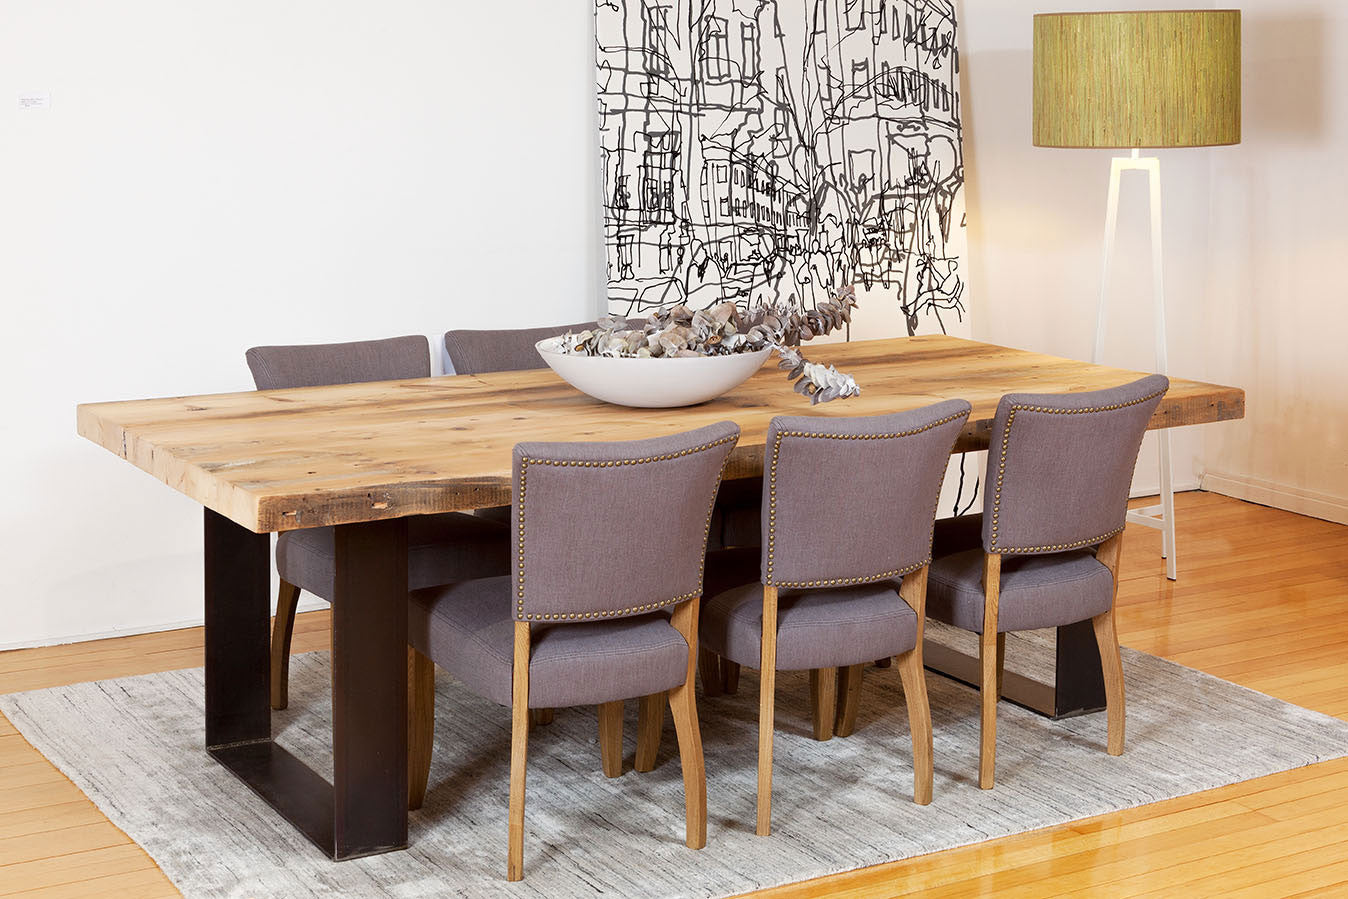 Recycled Baltic Timber Dining Tables With Steel Base Bespoke Furniture Gallery Perth